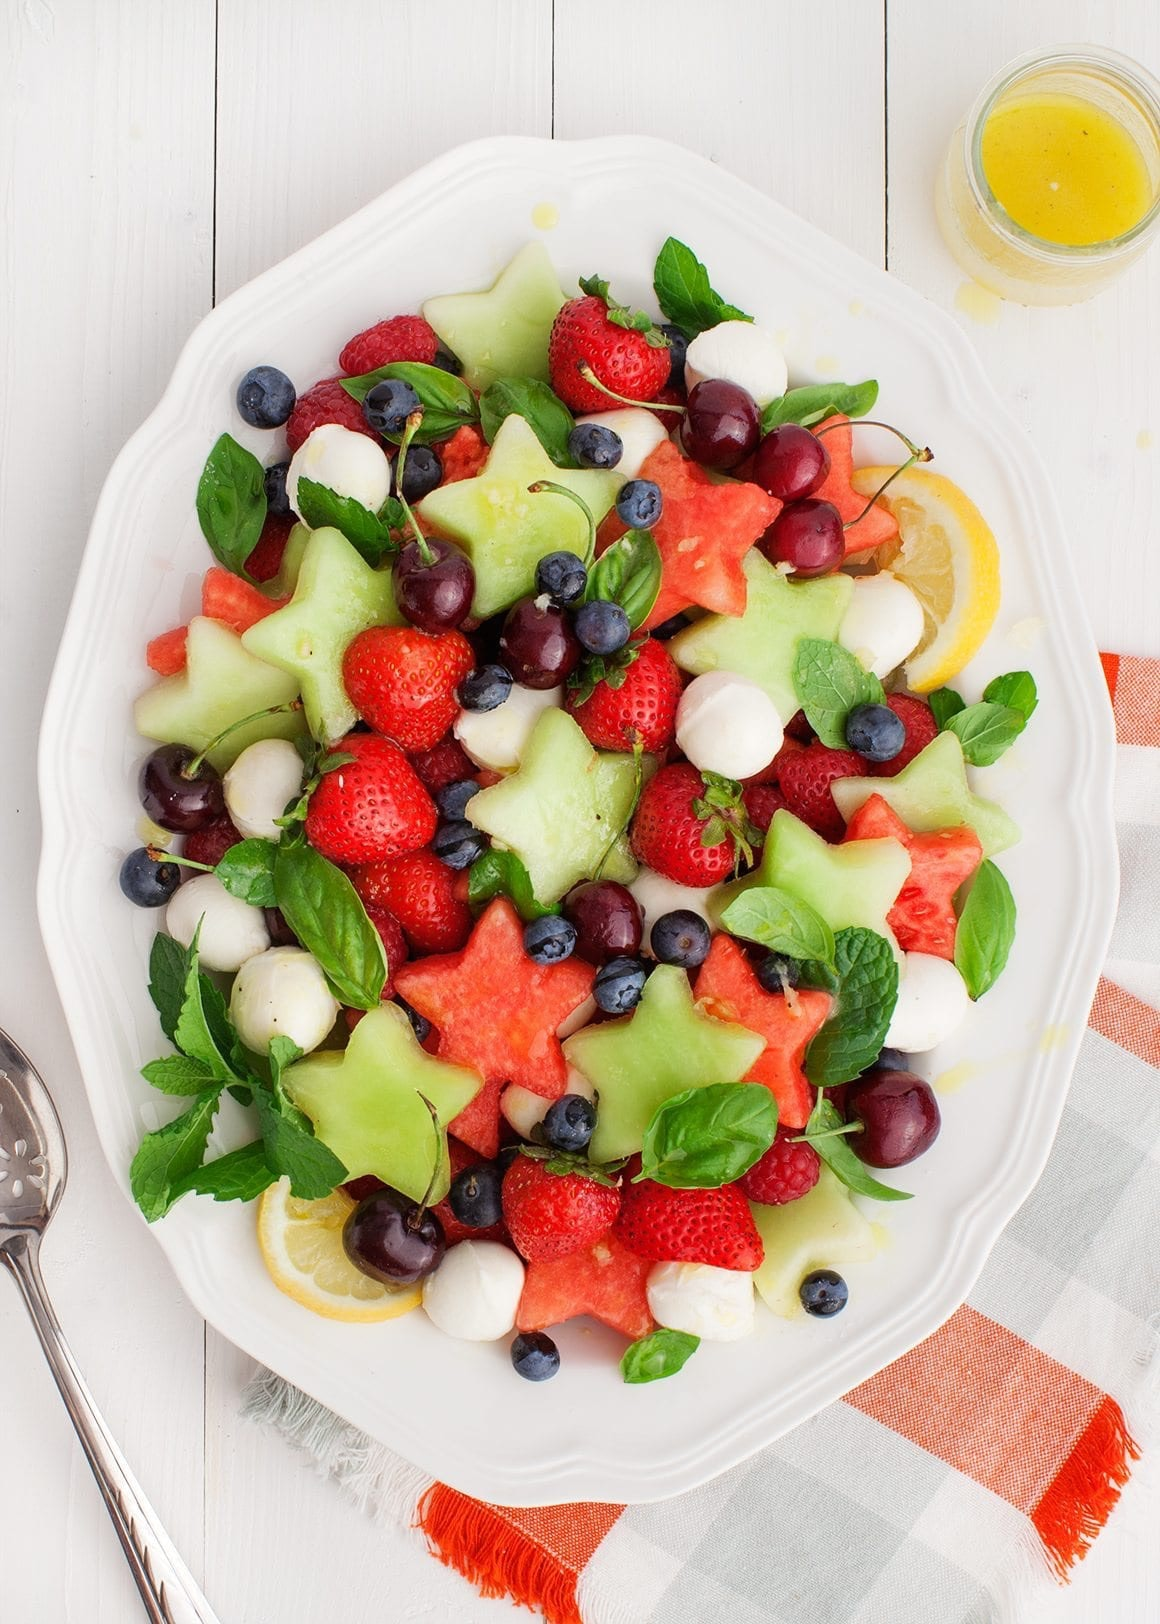 Festive Fruit Salad is an easy summer breakfast idea your kids will love.